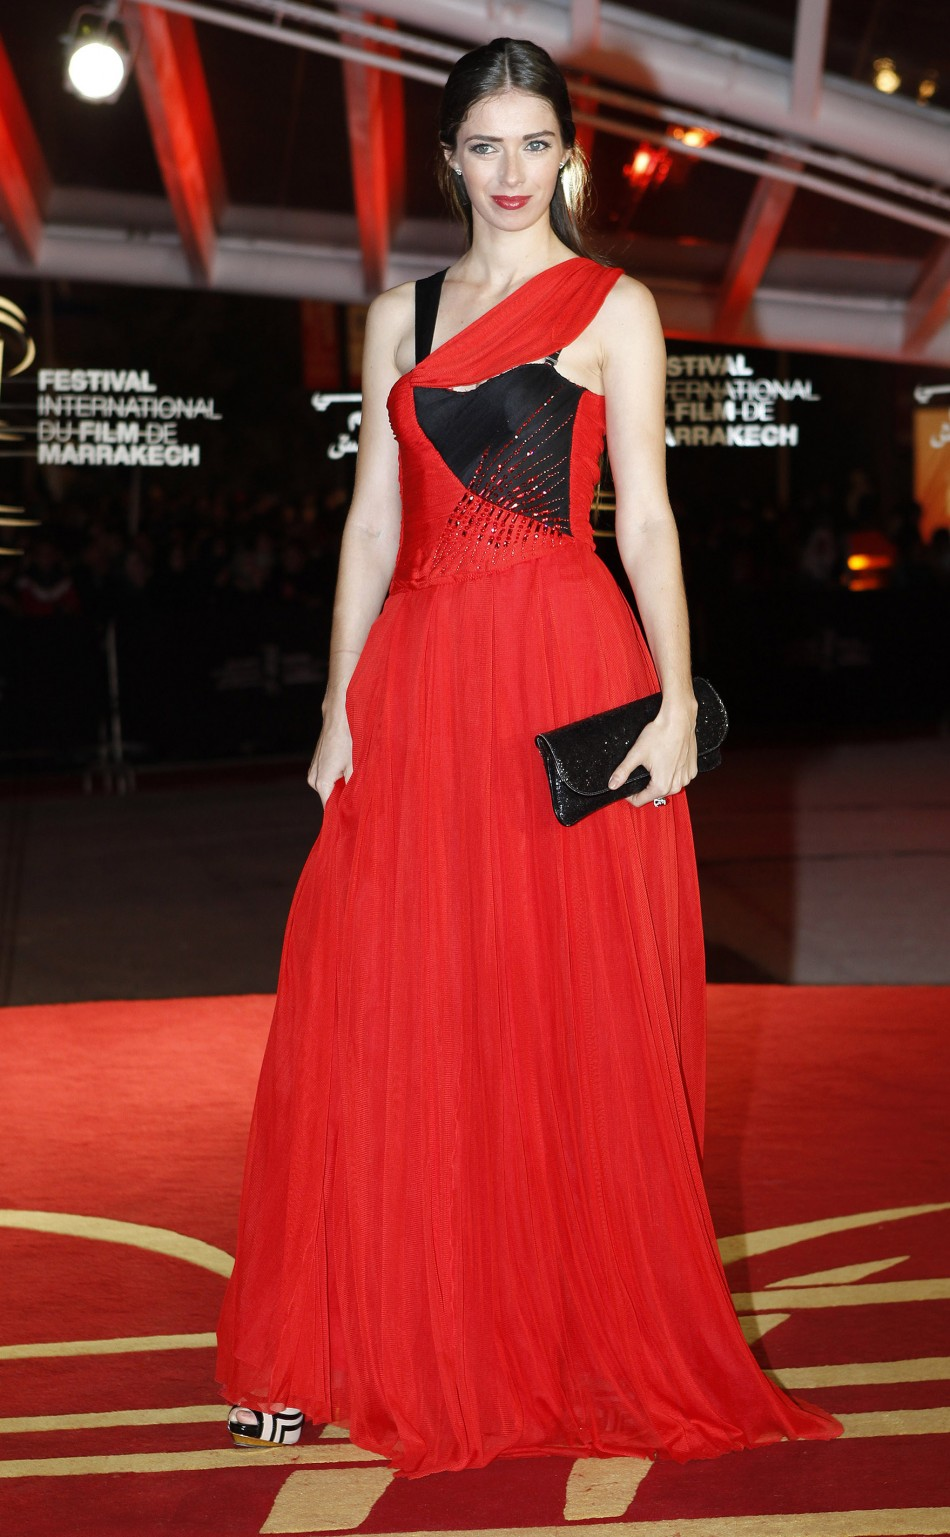 French actress Sarah Barzyk-Aubrey stuns in bold red. (Reuters)